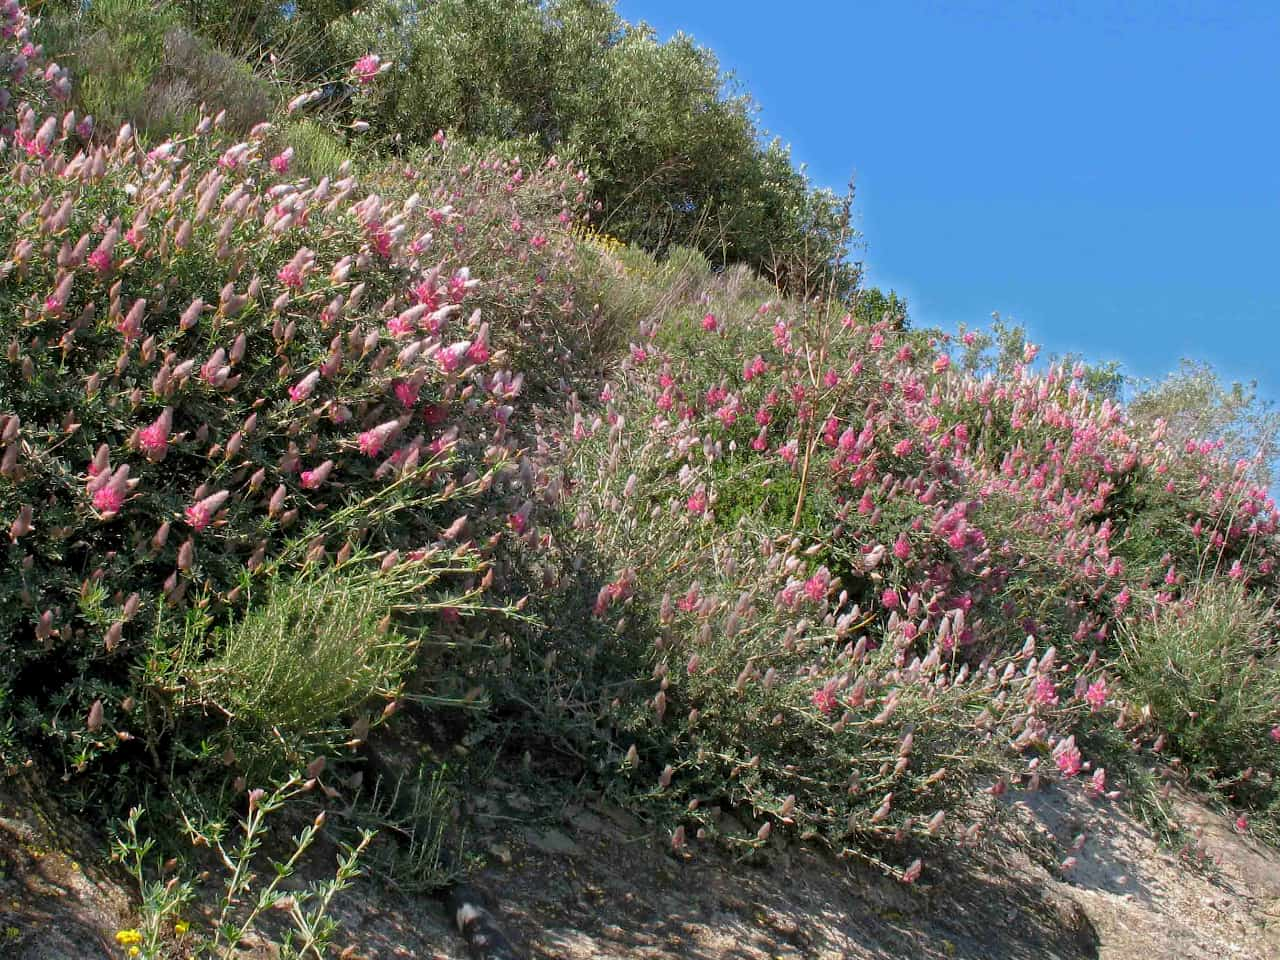 Wildflowers of Crete